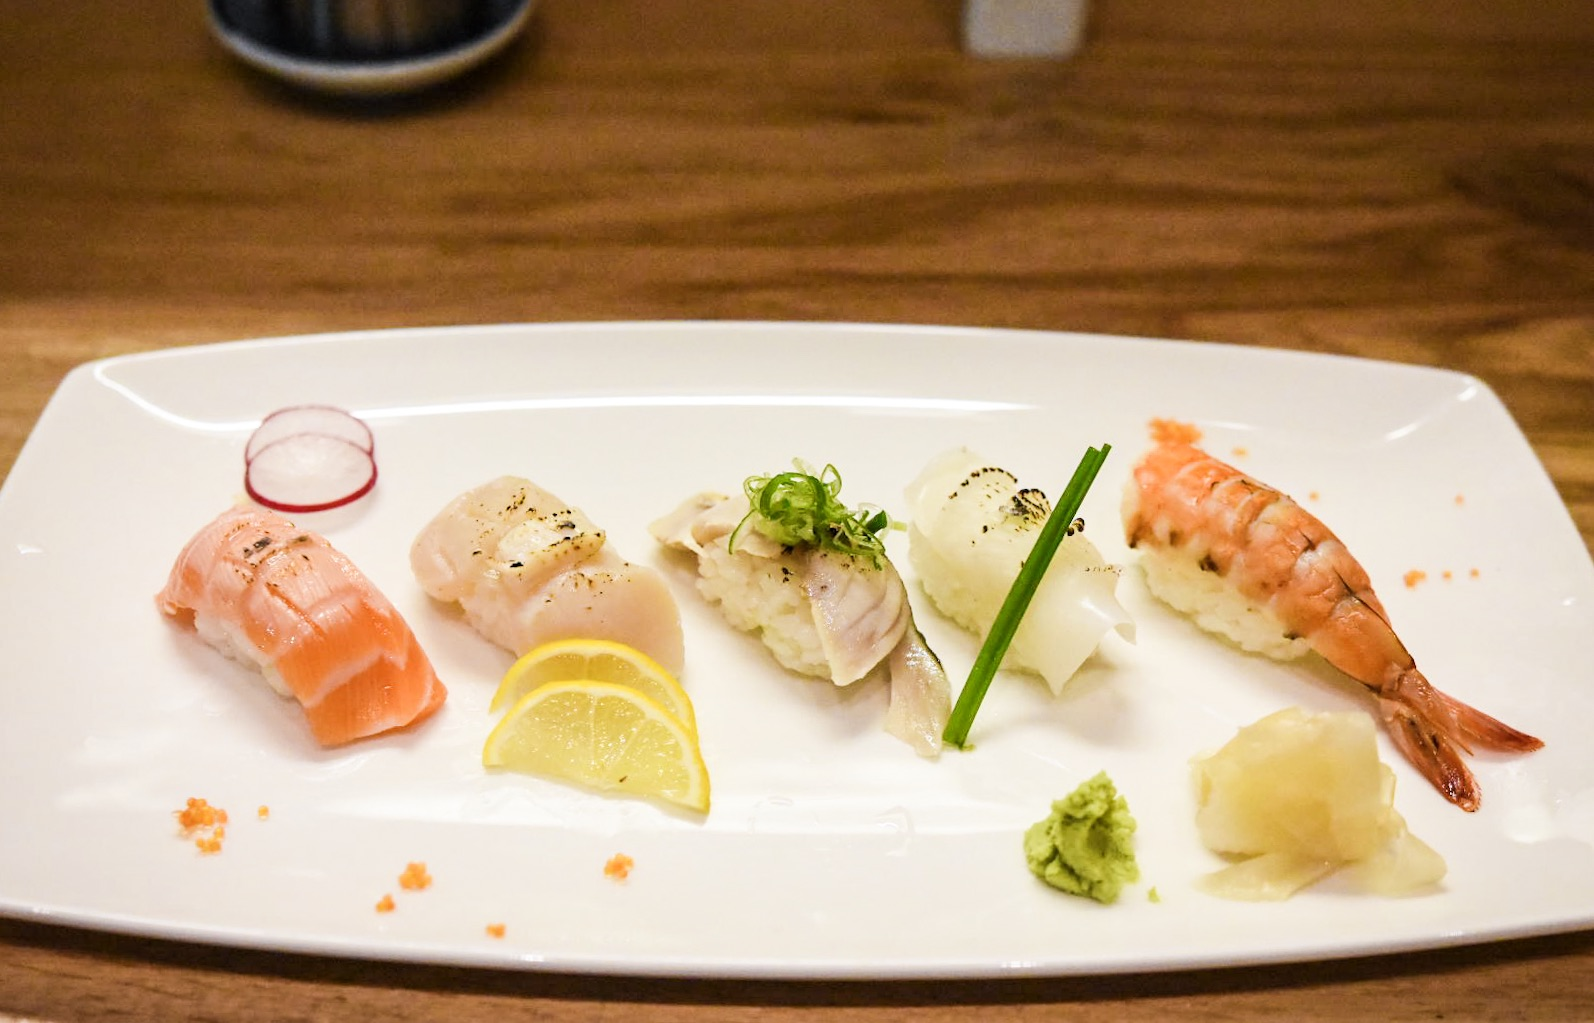 Aburi served at Sushi Bar HanaMatsuri, a Confidential Guides recommended Japanese restaurant in Meanwood, Leeds